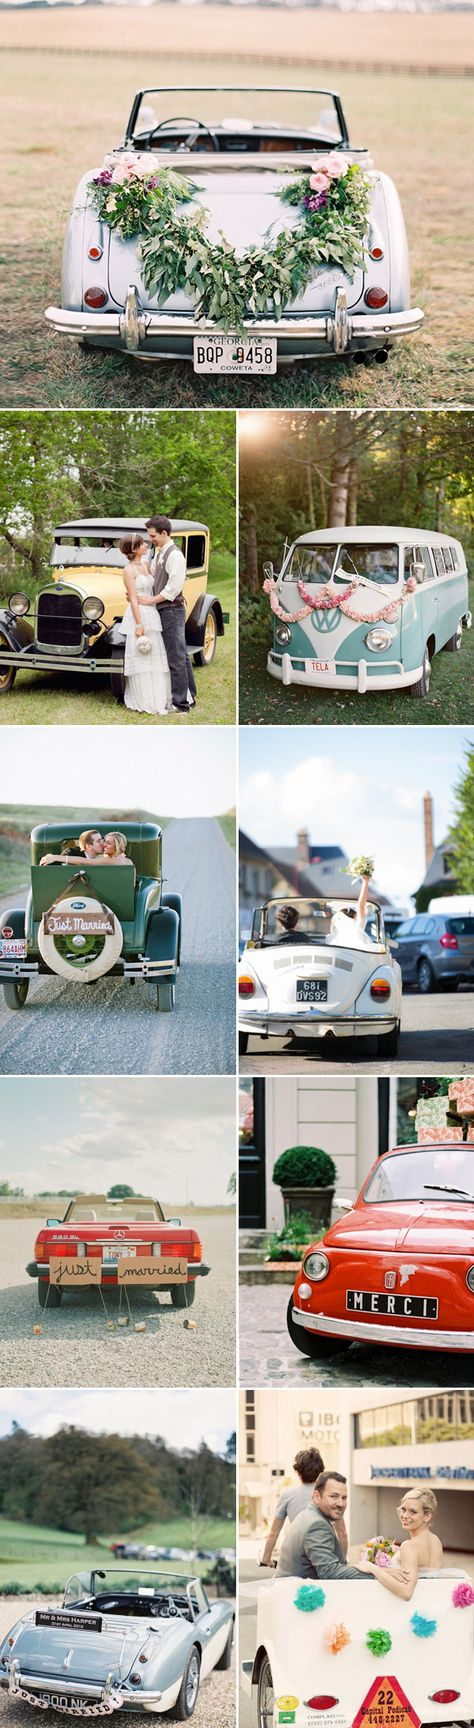 Vintage automobiles add a special touch to your photos and make an impression on the guests.  Many vintage car rental companies now offer fully restored and air-conditioned cars with built in serving tables to bring you the comfort of today and the splendid styles of yesterday.  Make sure your vintage car comes equipped with modern …